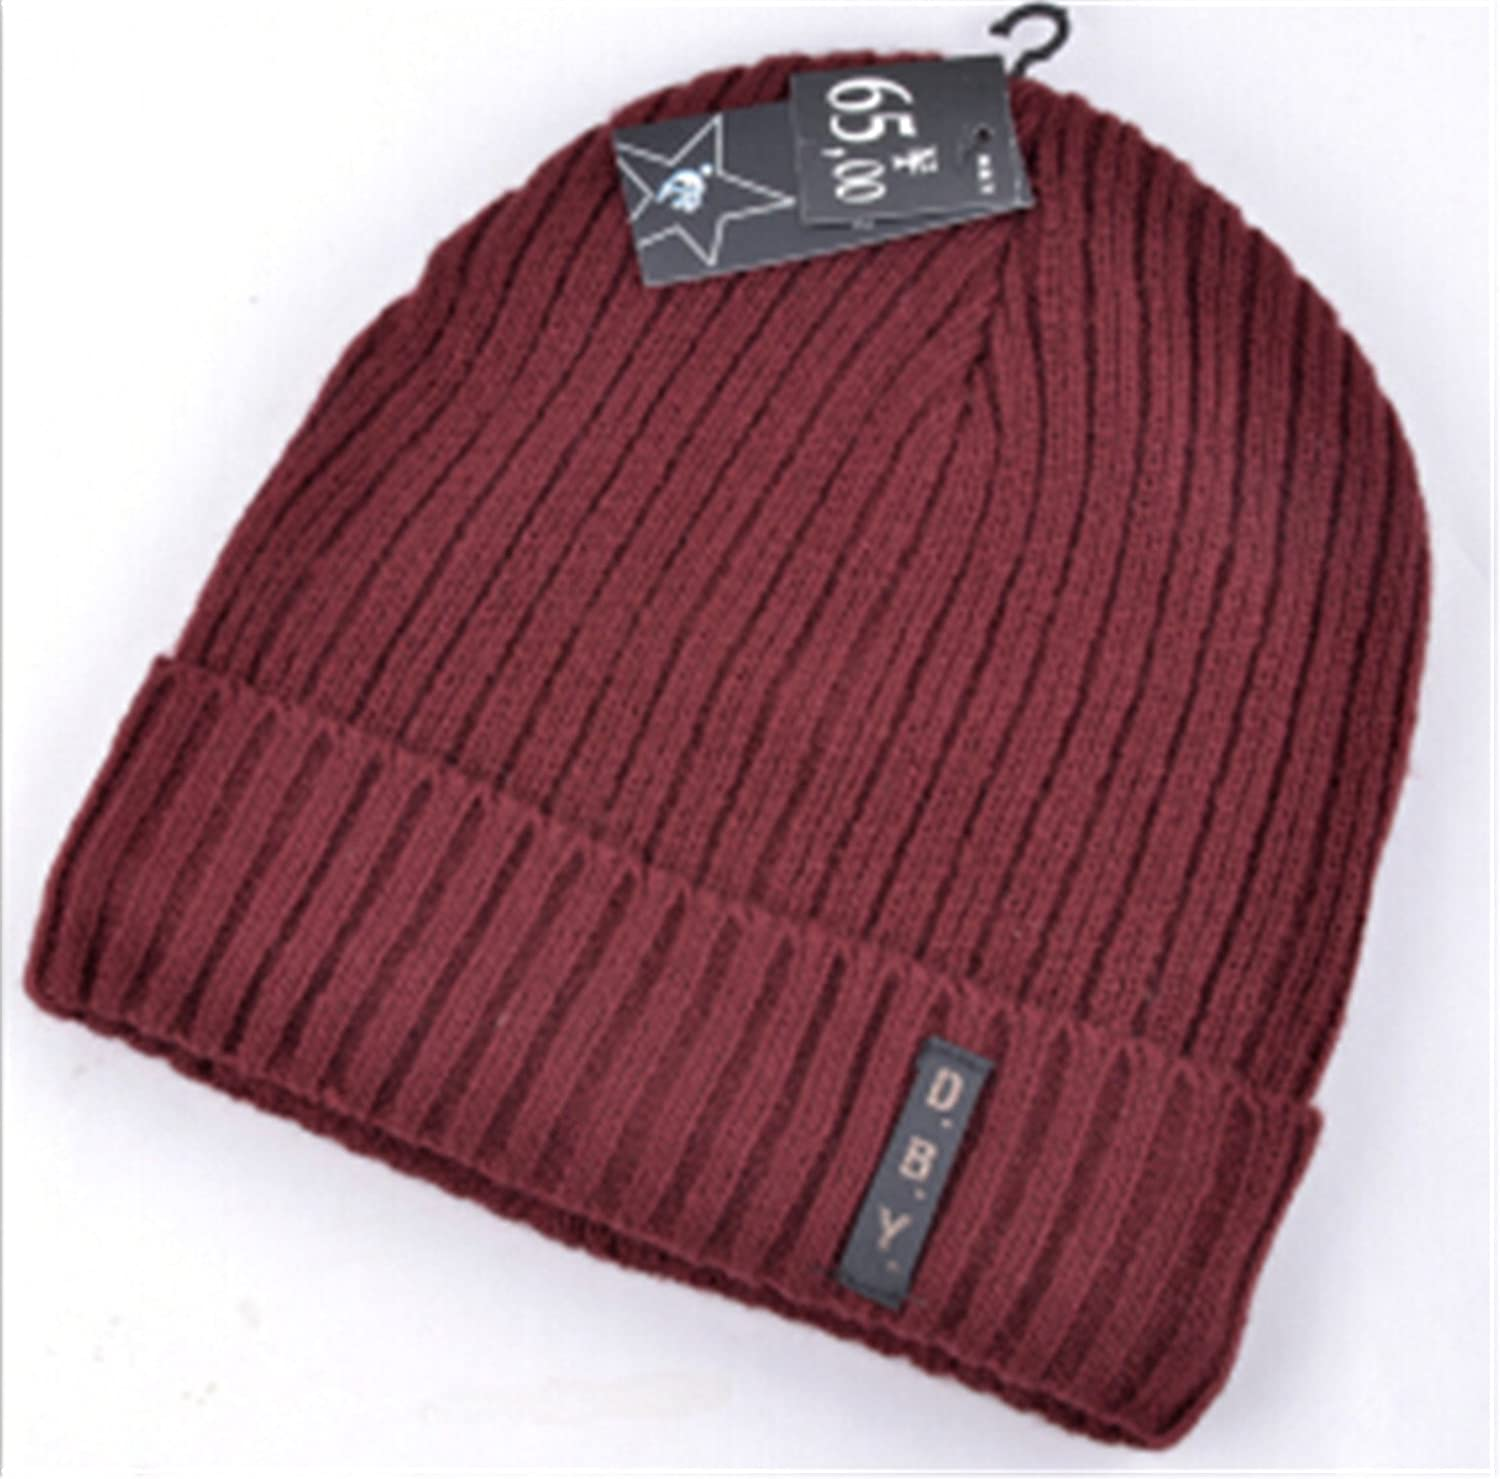 1eac8f22421 Amazon.com  Donna Pierce NEW mens designer hats bonnet winter beanie  knitted wool hat plus velvet cap skullies Thicker mask Fringe beanies for  men Crimson  ...